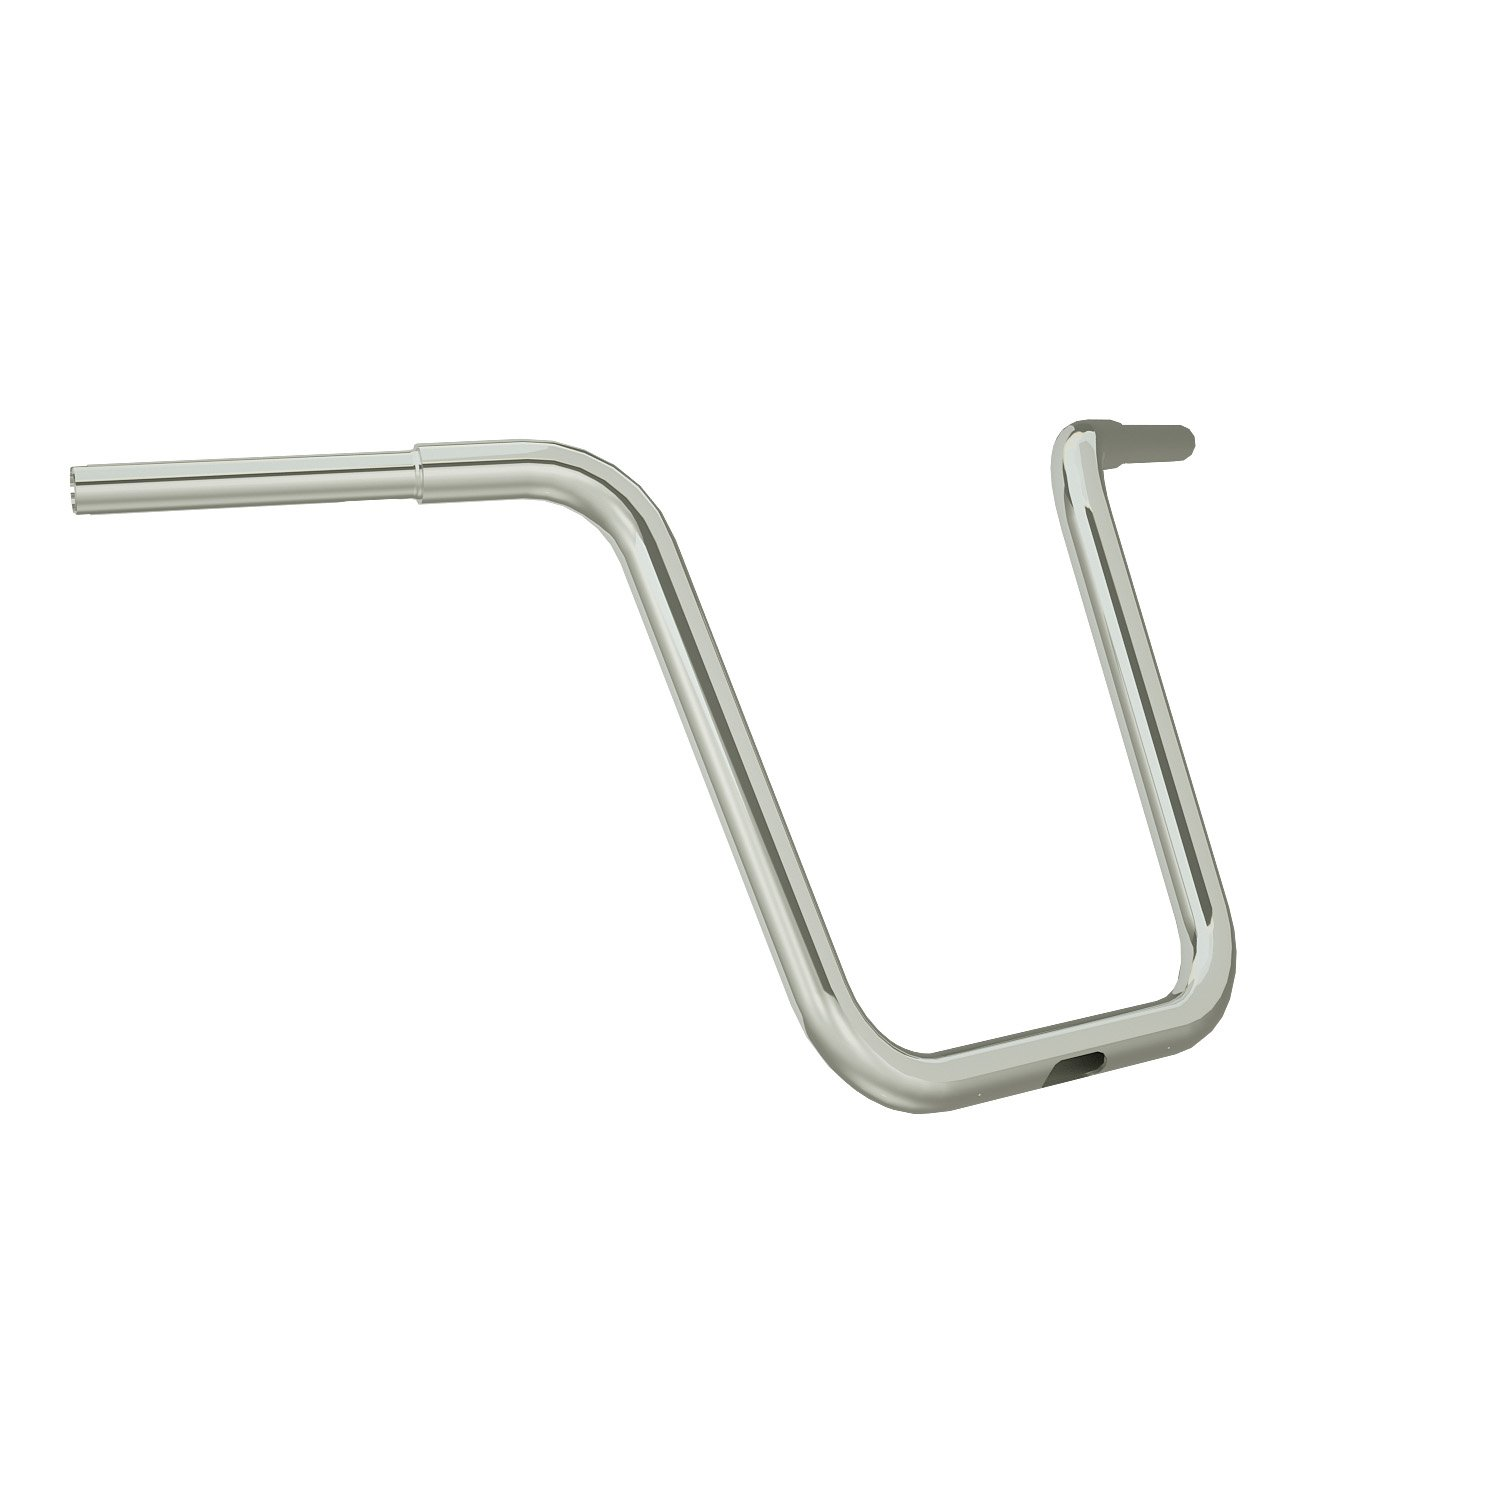 16″ Ape Hanger Handlebar Kit – Polished Stainless